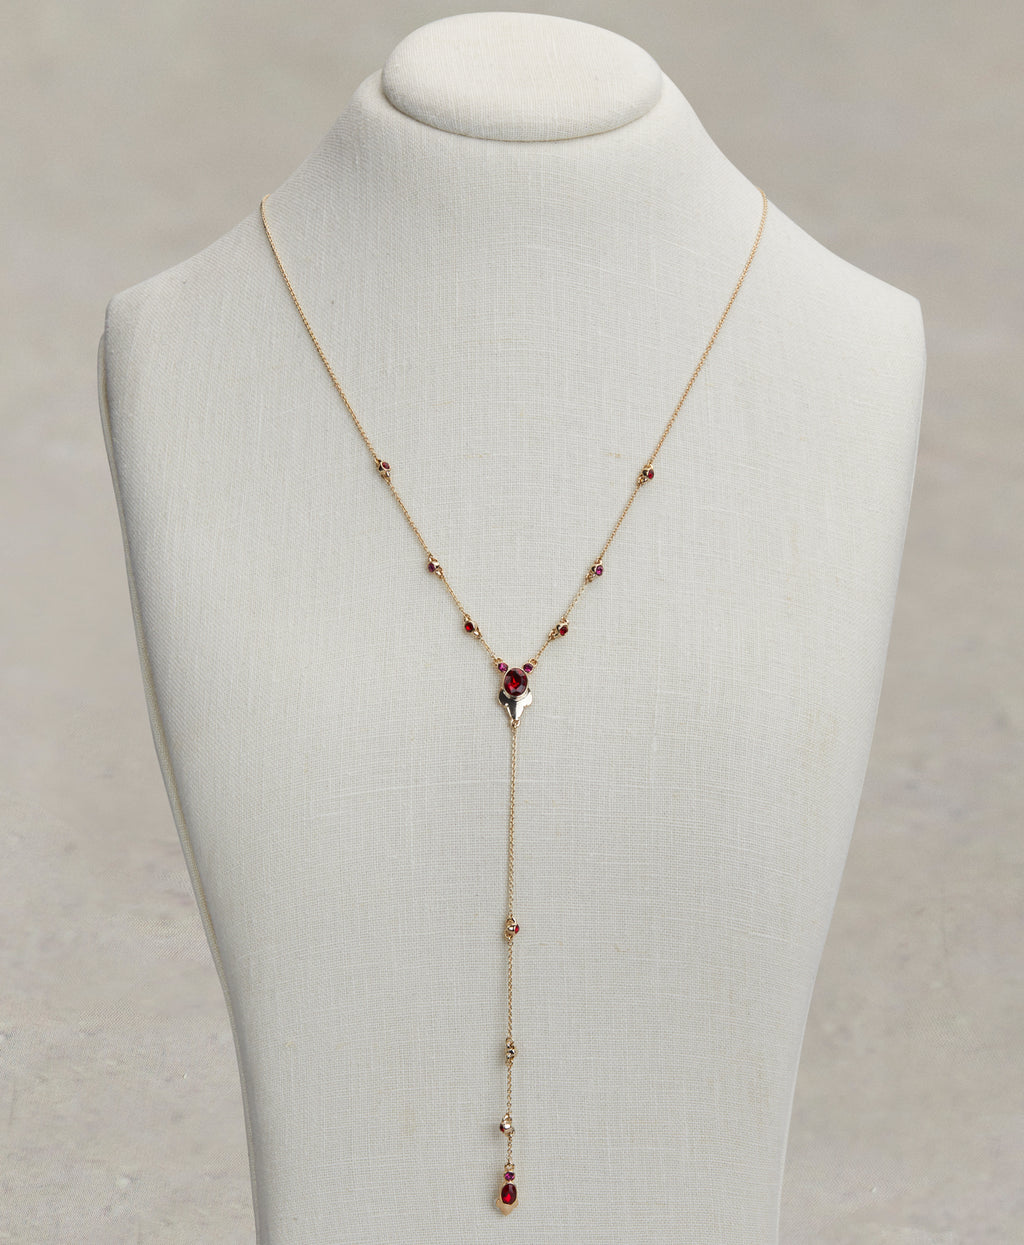 VIDA NECKLACE | VIDA NECKLACE